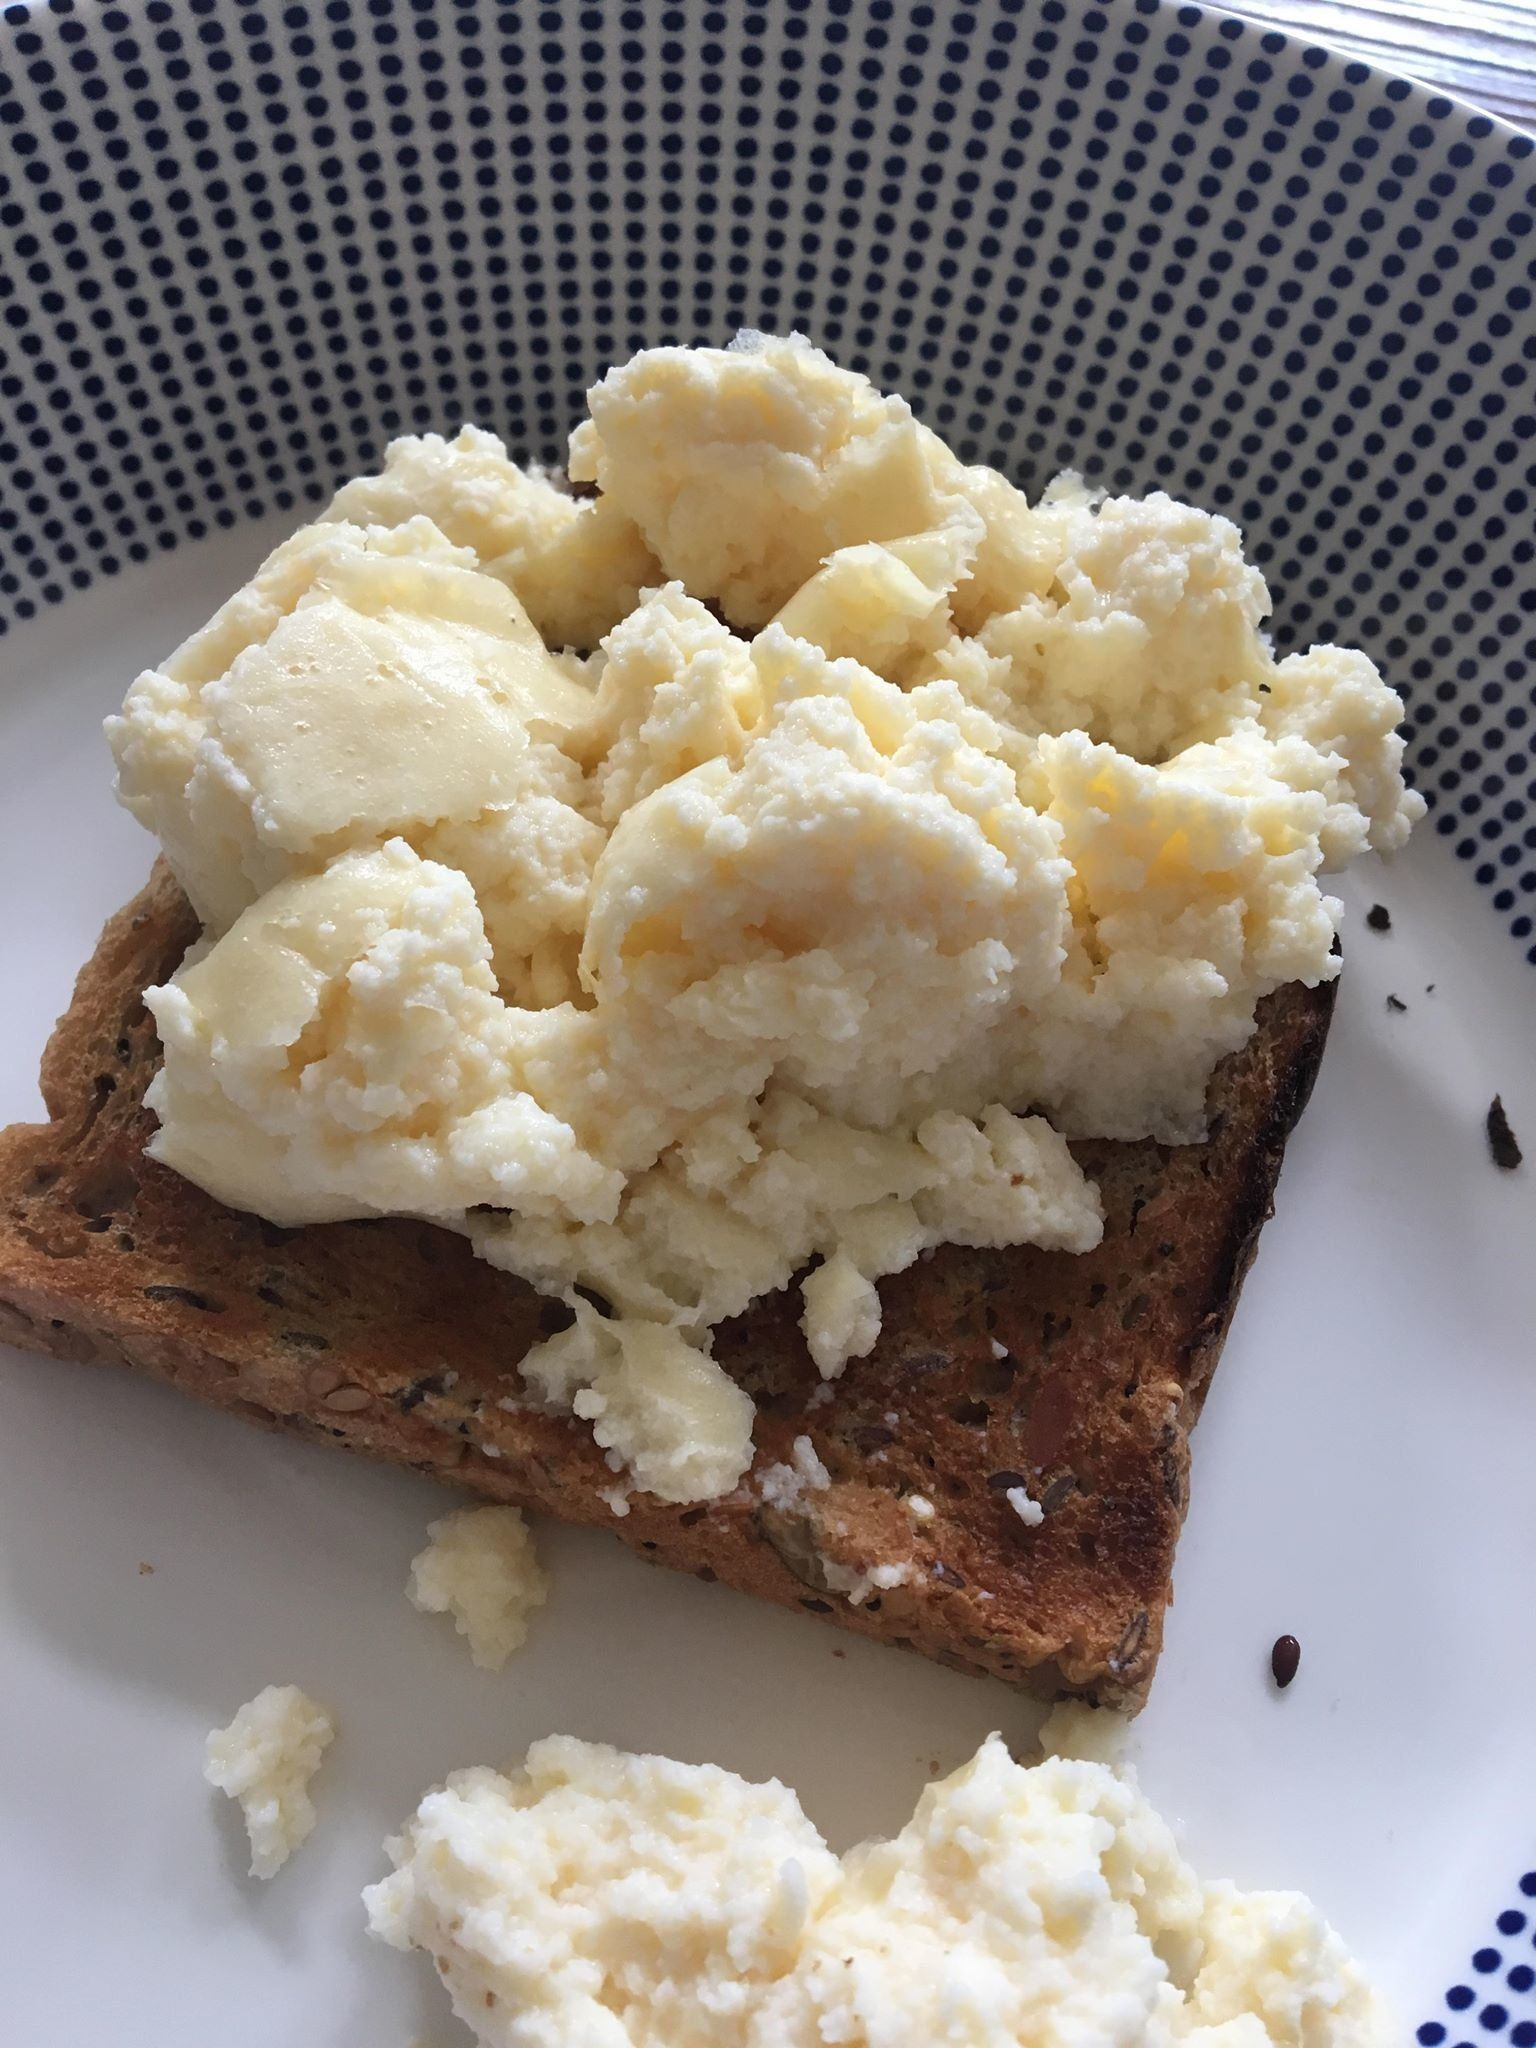 Can Iceland's Microwave Scrambled Eggs Beat The Homemade